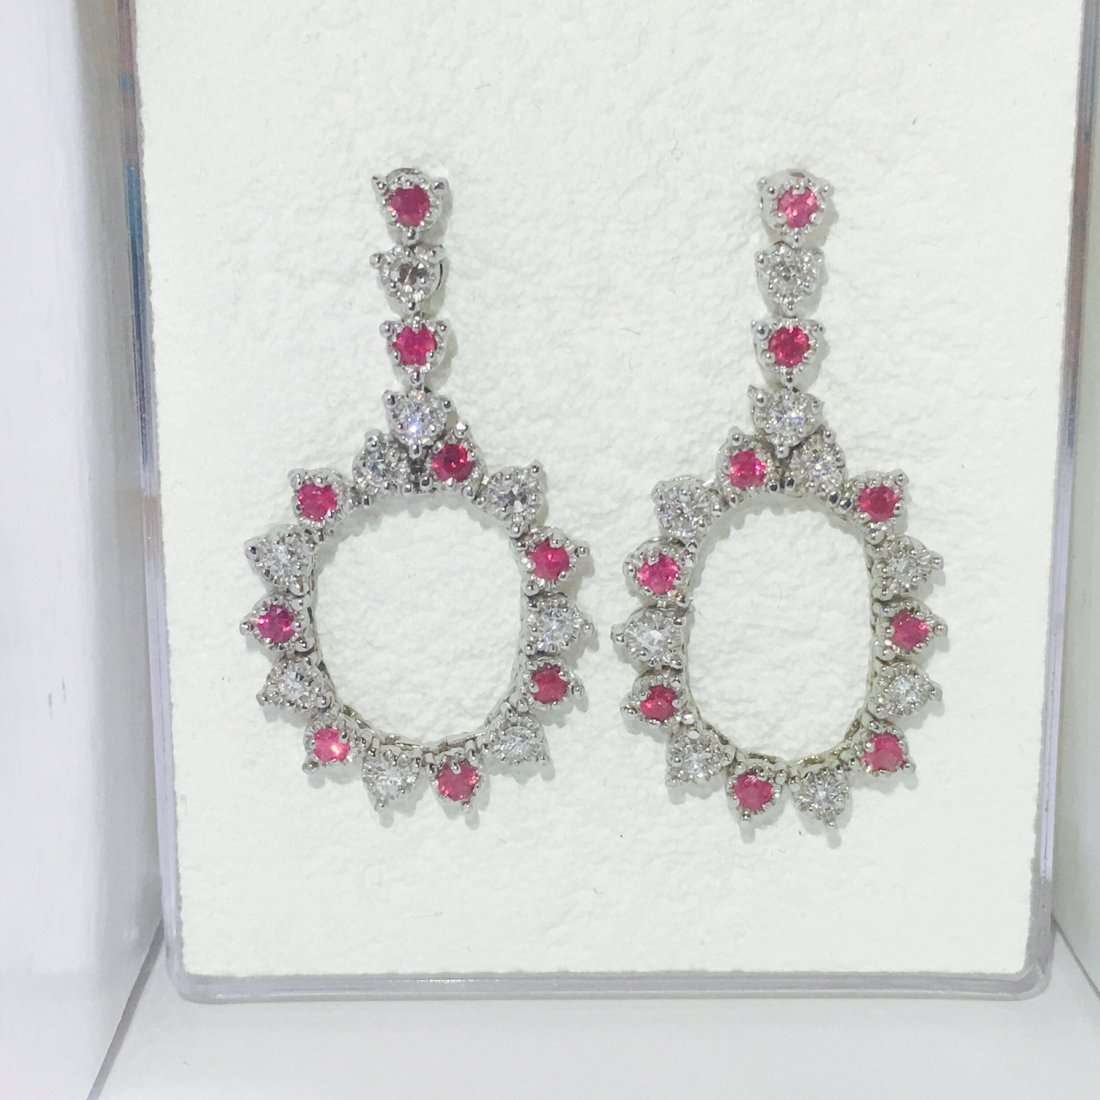 14K Gold, Super Gem Burma Ruby and VS Diamond Earrings